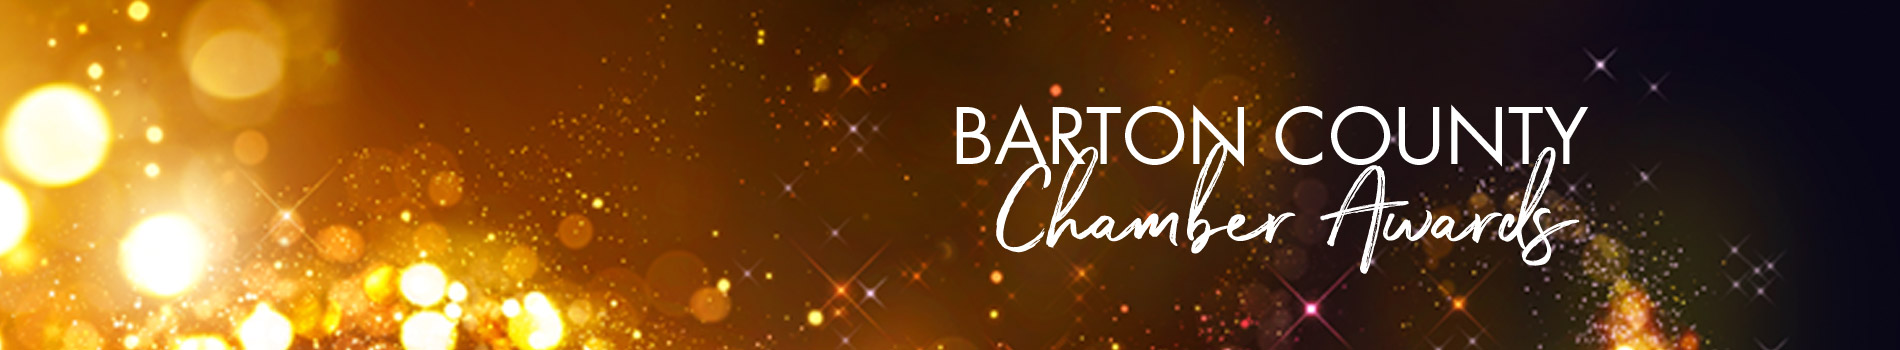 Barton County Chamber of Commerce Award